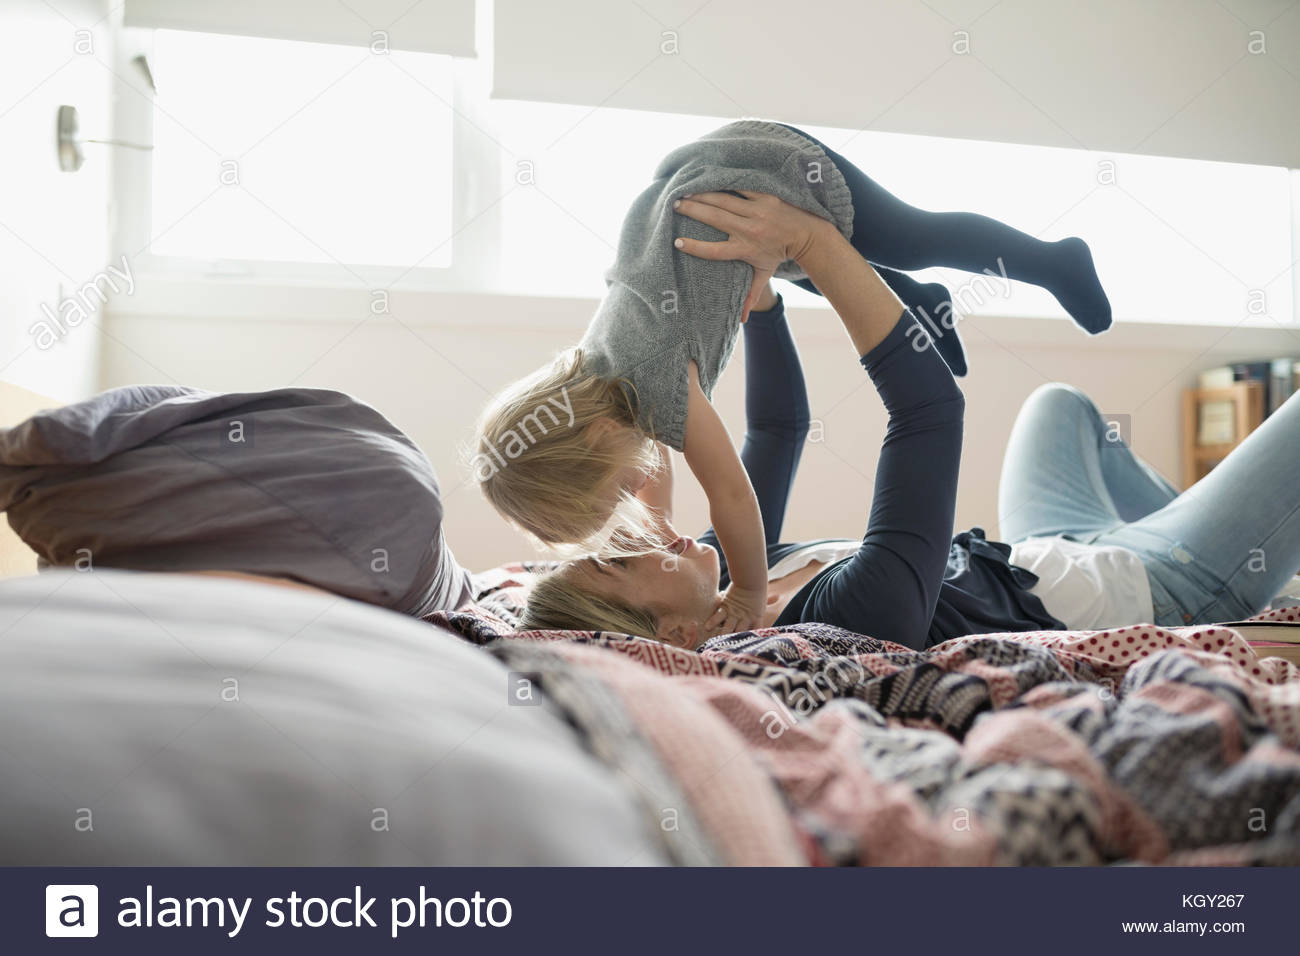 Affectionate mother holding daughter overhead on bed - Stock Image